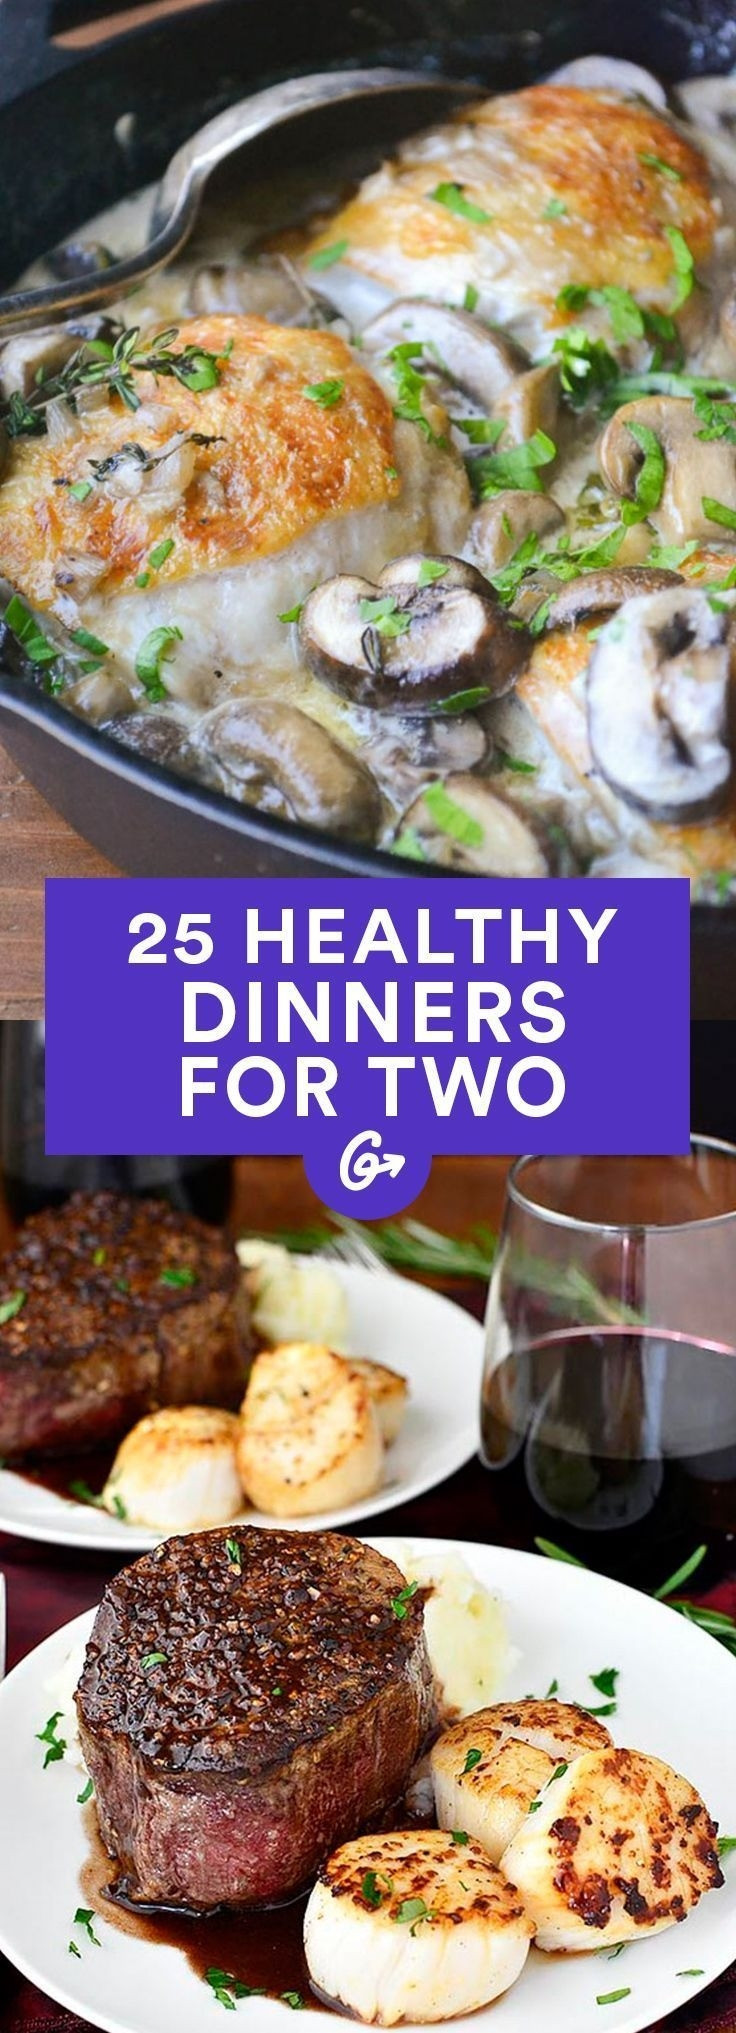 Healthy Dinners For Two  Light Dinner Ideas For TwoWritings and Papers